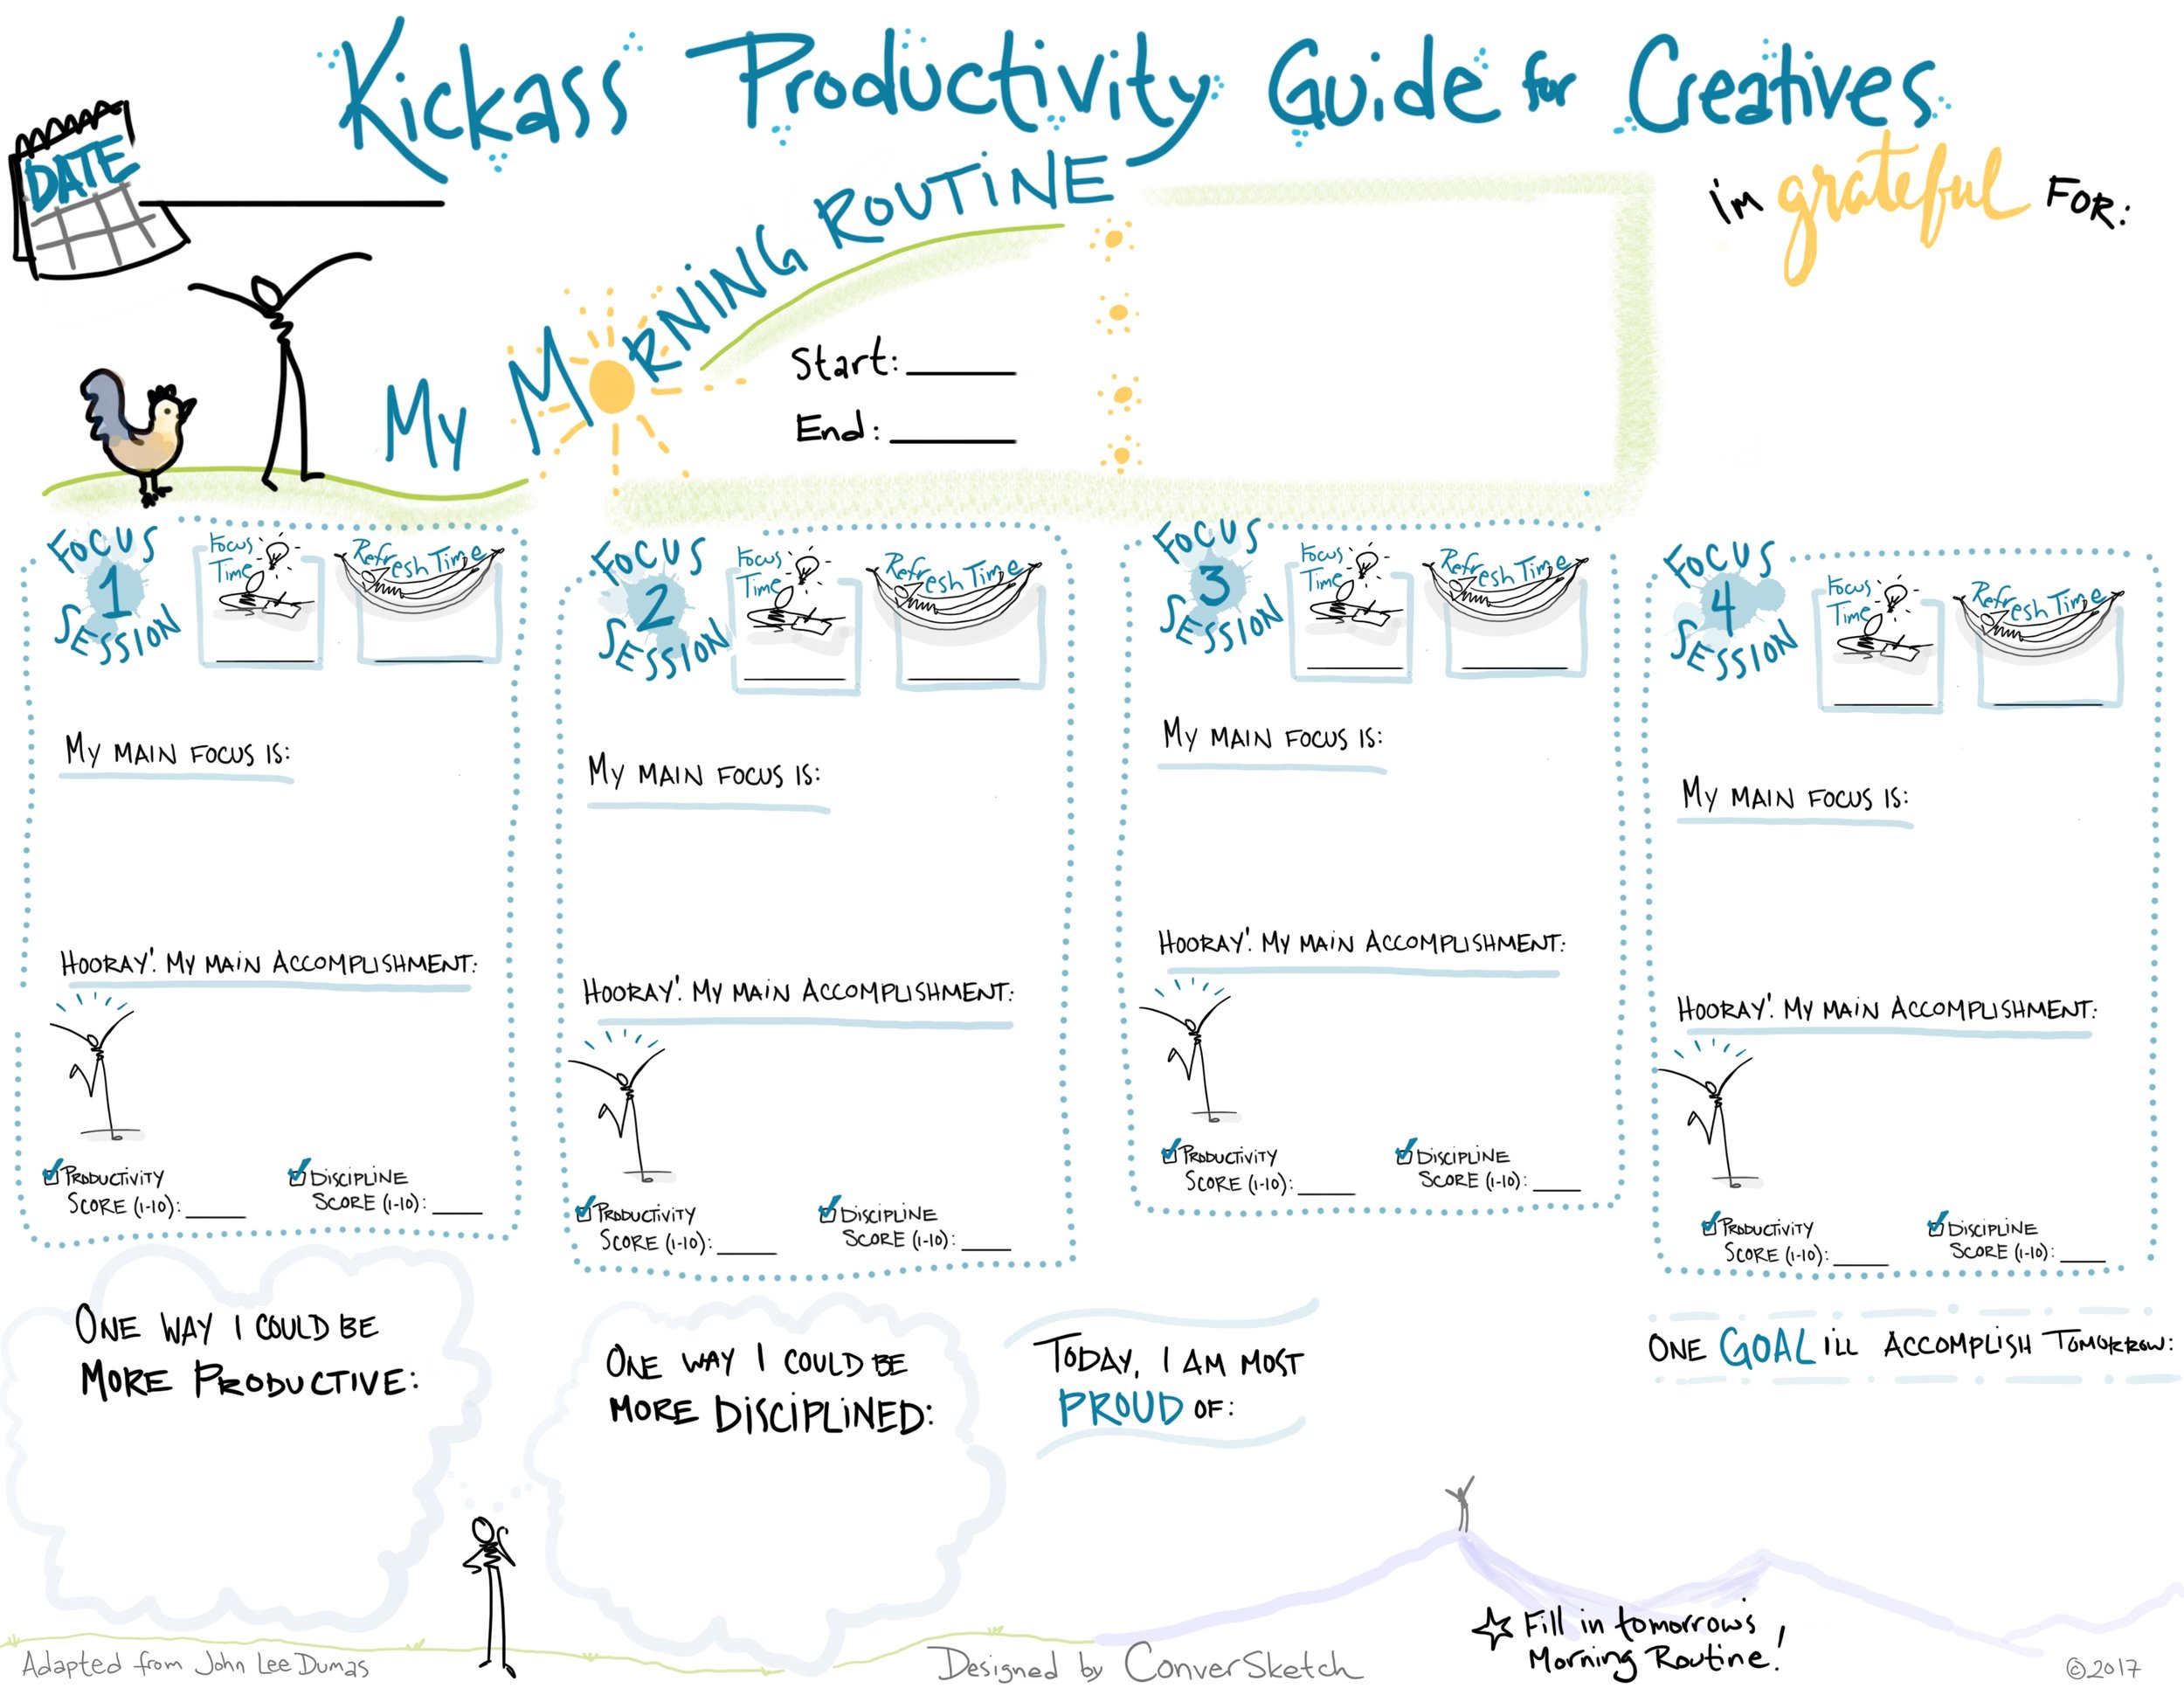 visual productivity guide for creative people